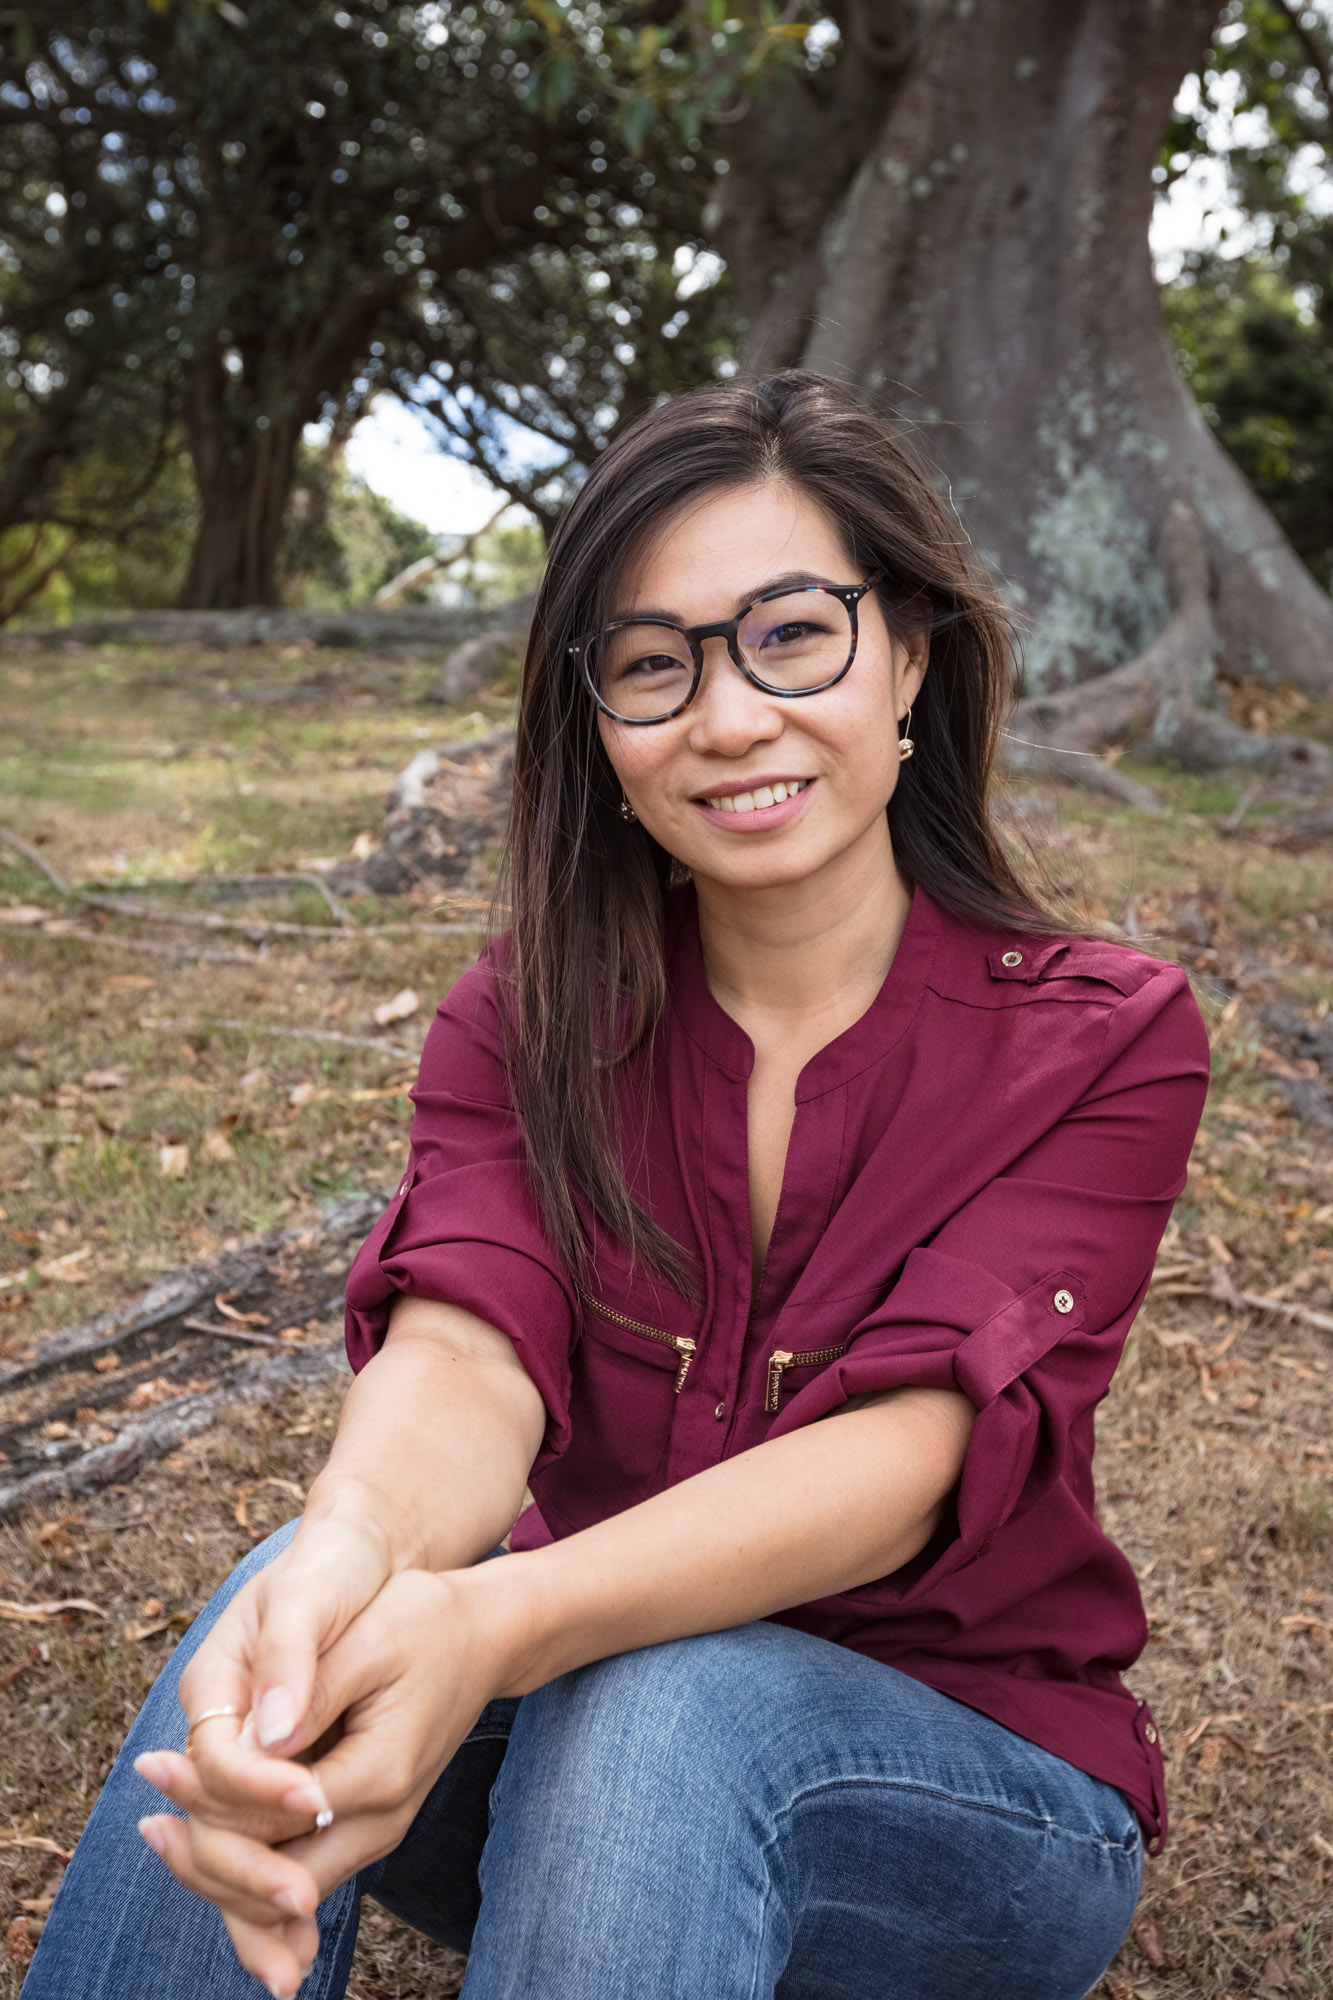 Headshot of Allison Tsao